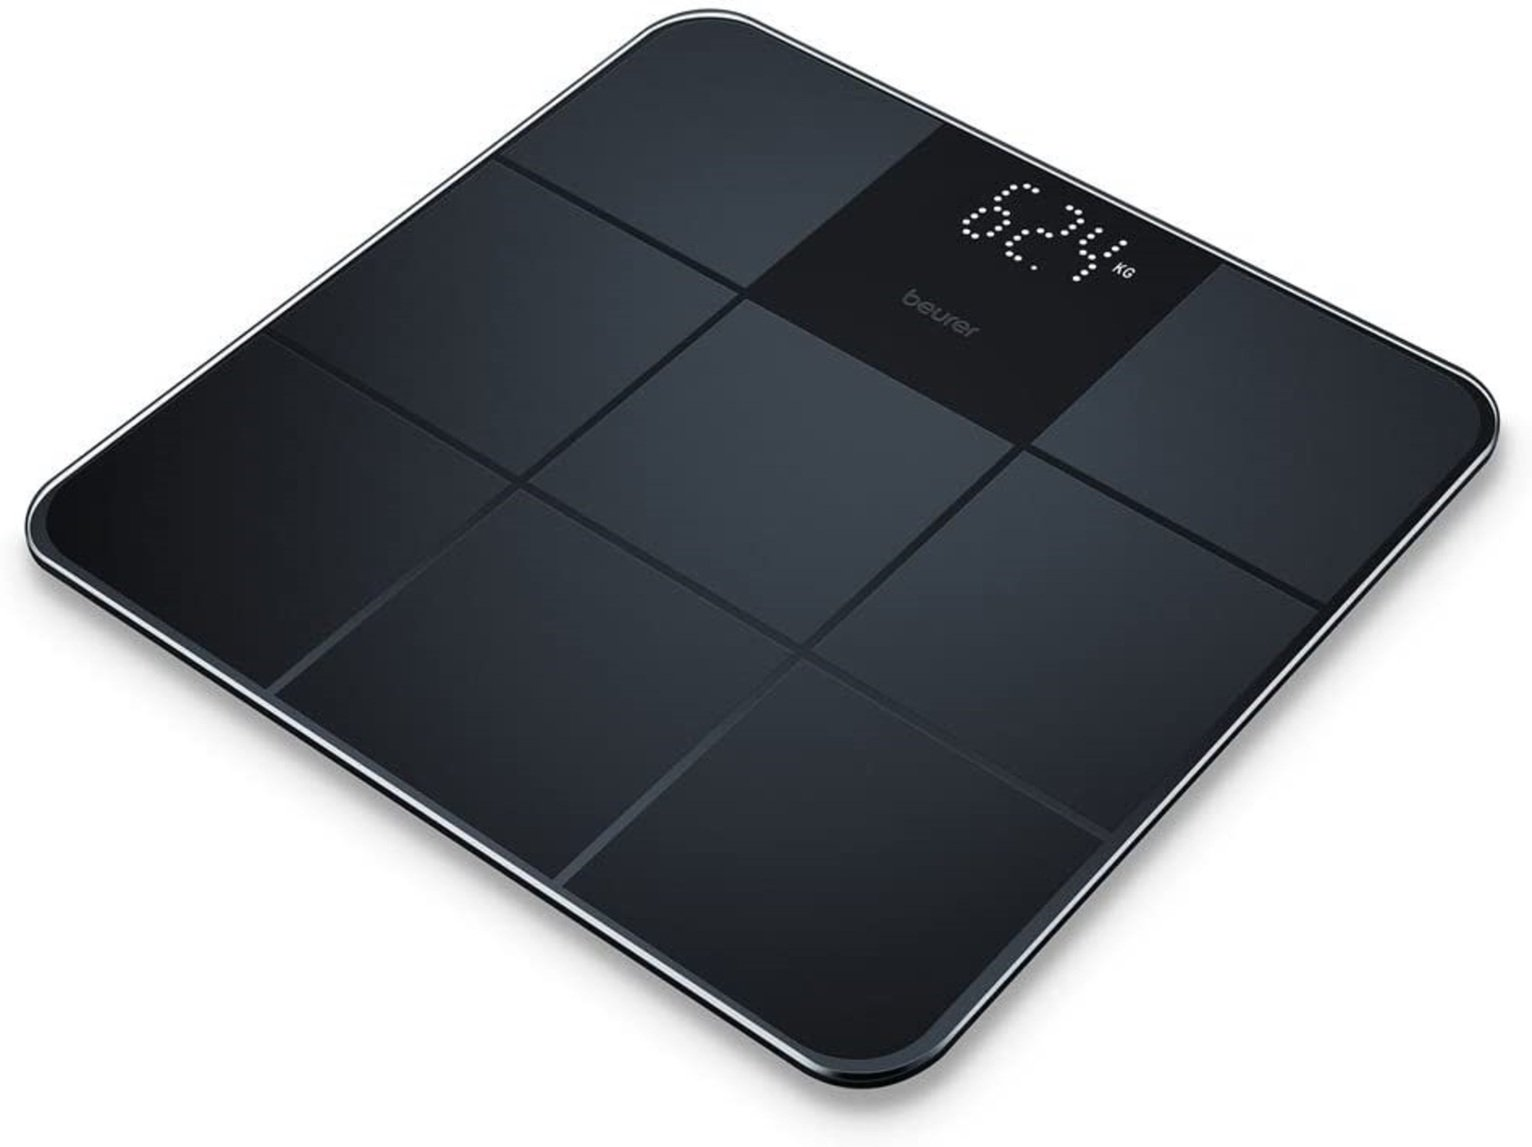 Beurer GS235 Personal Slim Glass Body Analyser Scale - Black